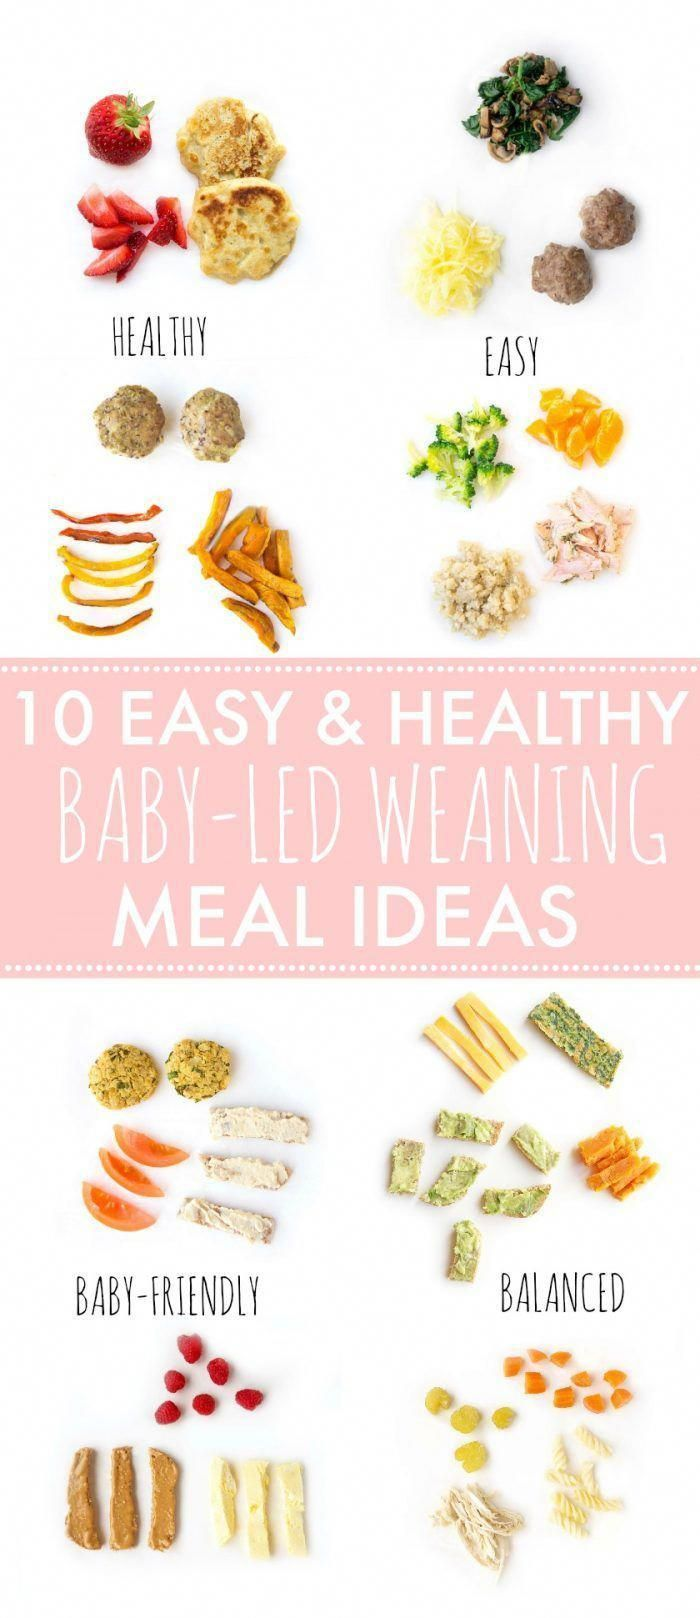 Looking for some easy and healthy meal ideas for baby-led weaning or finger foods for toddlers? Here...